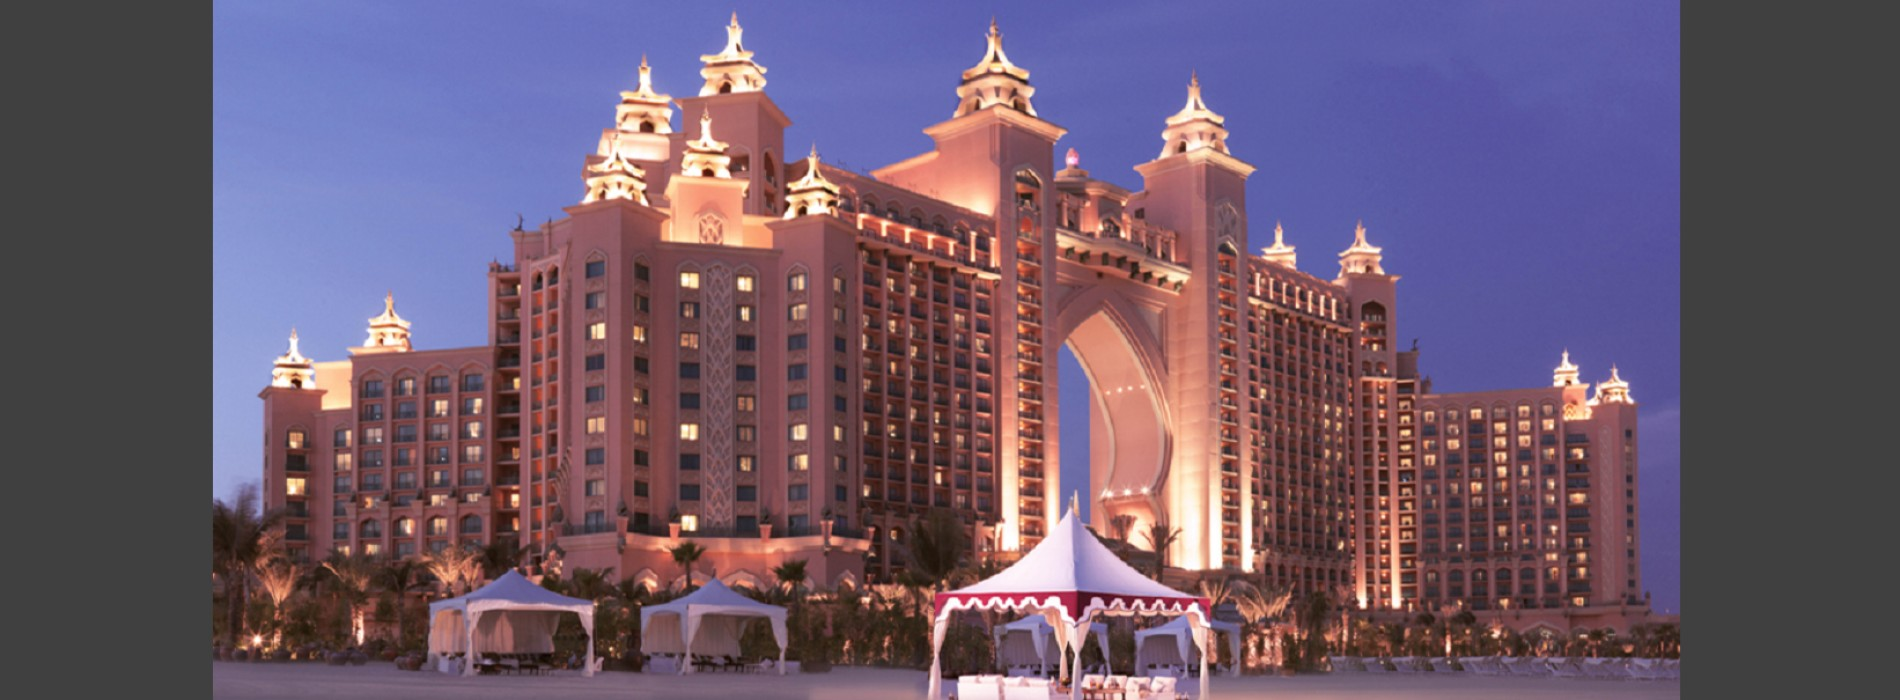 Atlantis, The Palm, Dubai receives an overwhelming response during a three-city roadshow in India